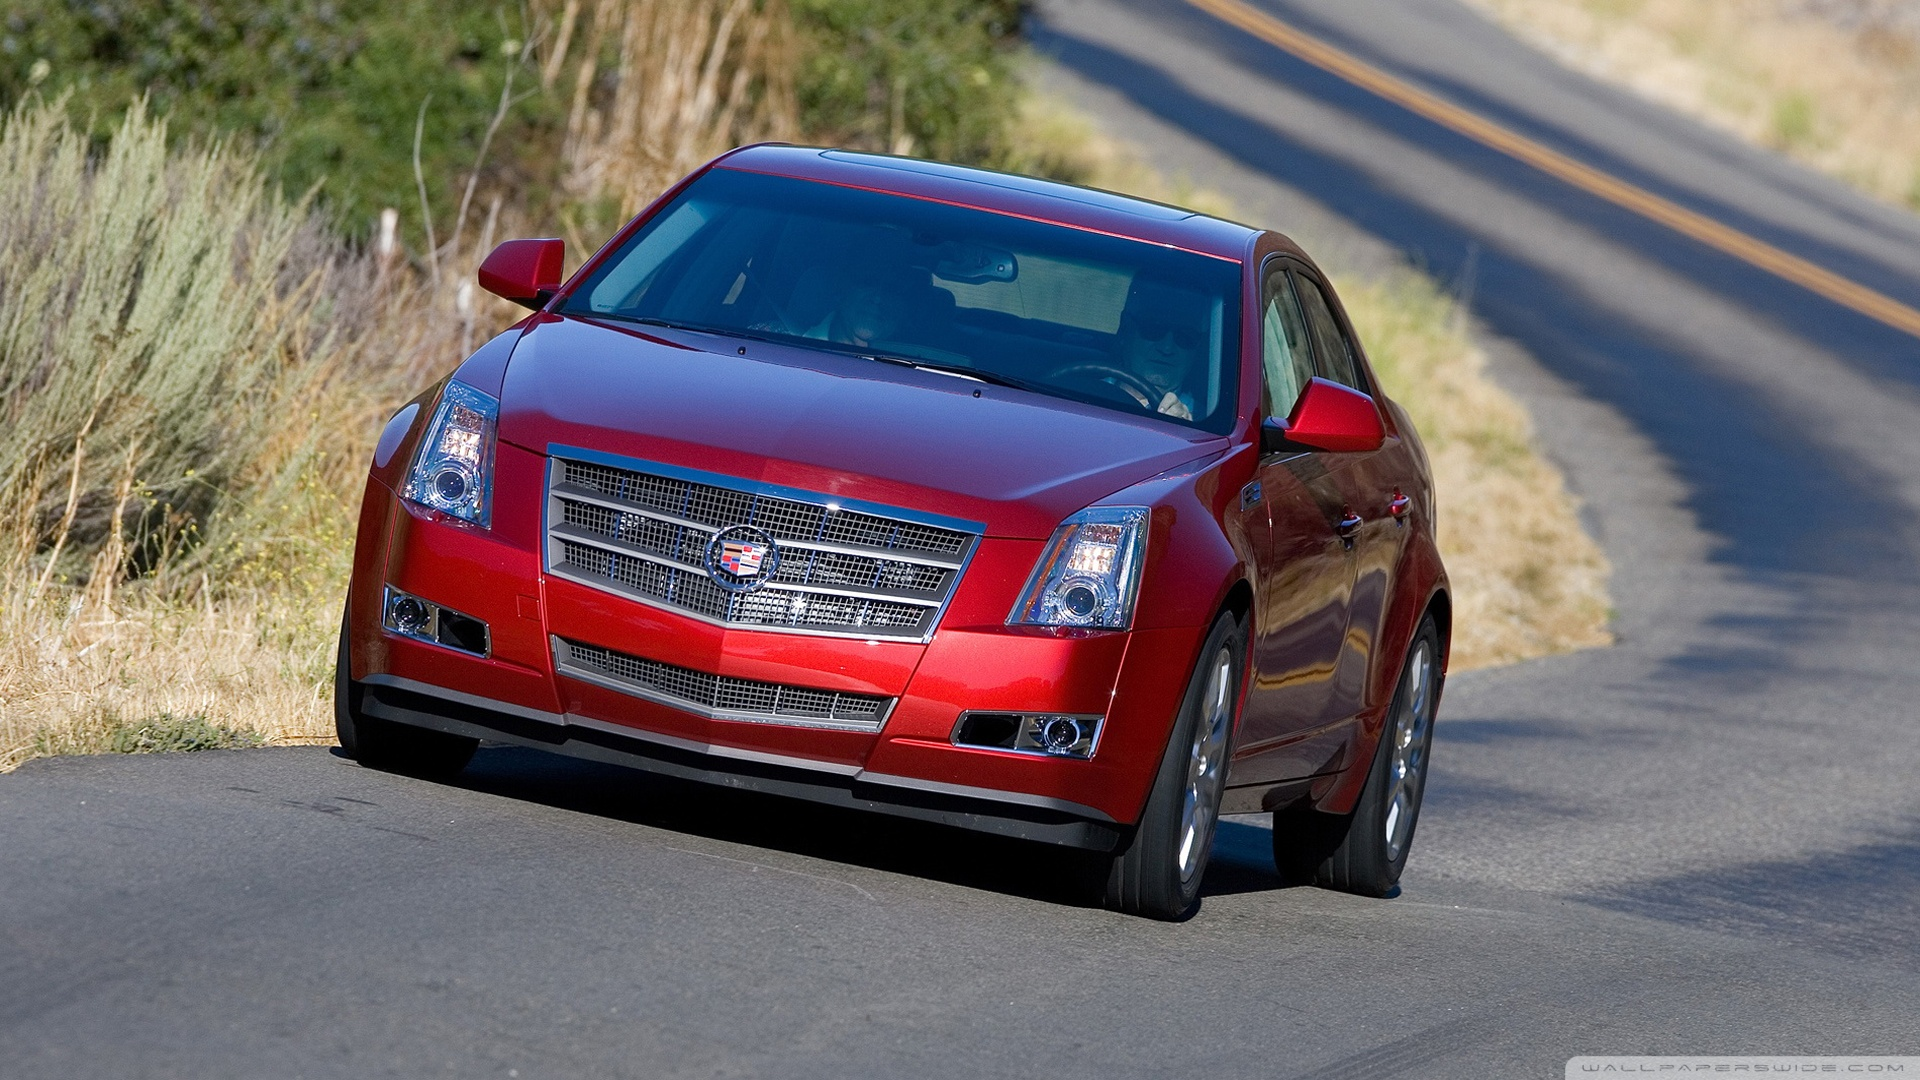 CADILLAC CTS red